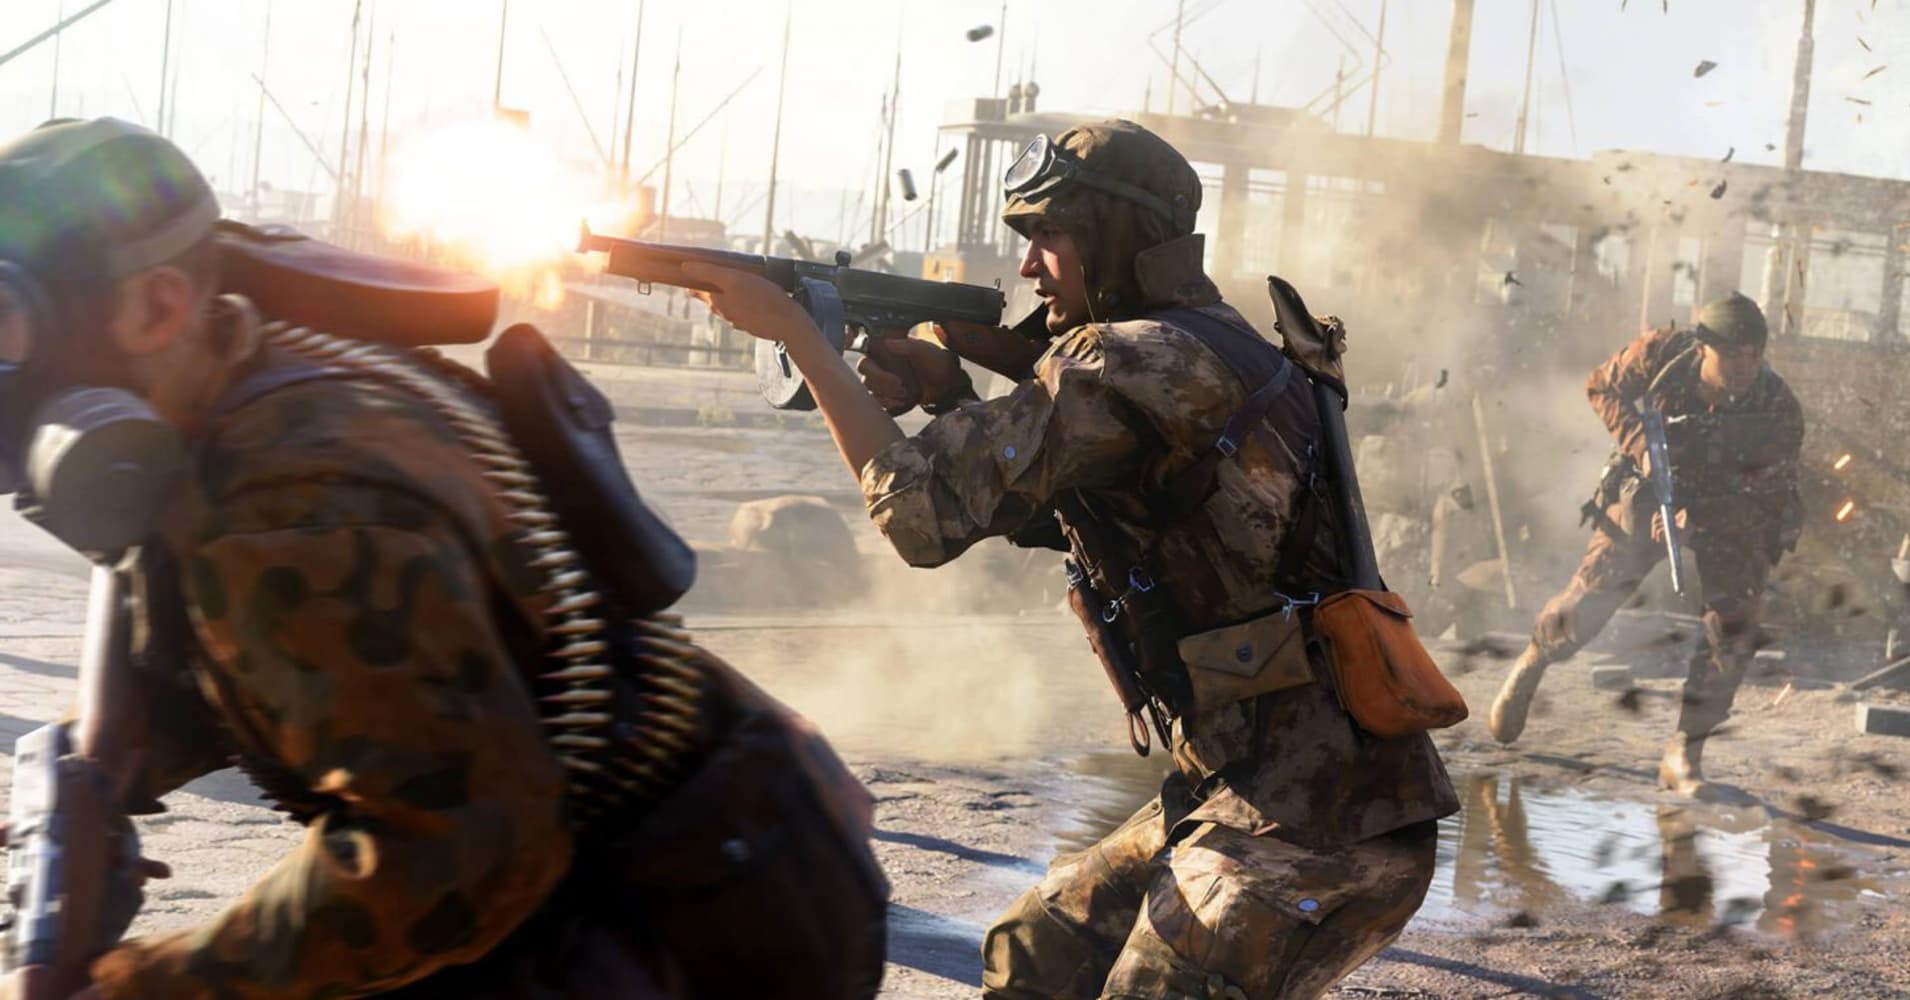 Analyst predicts EA's 'Battlefield V' will be a 'serious disappointment,' citing weak pre-orders